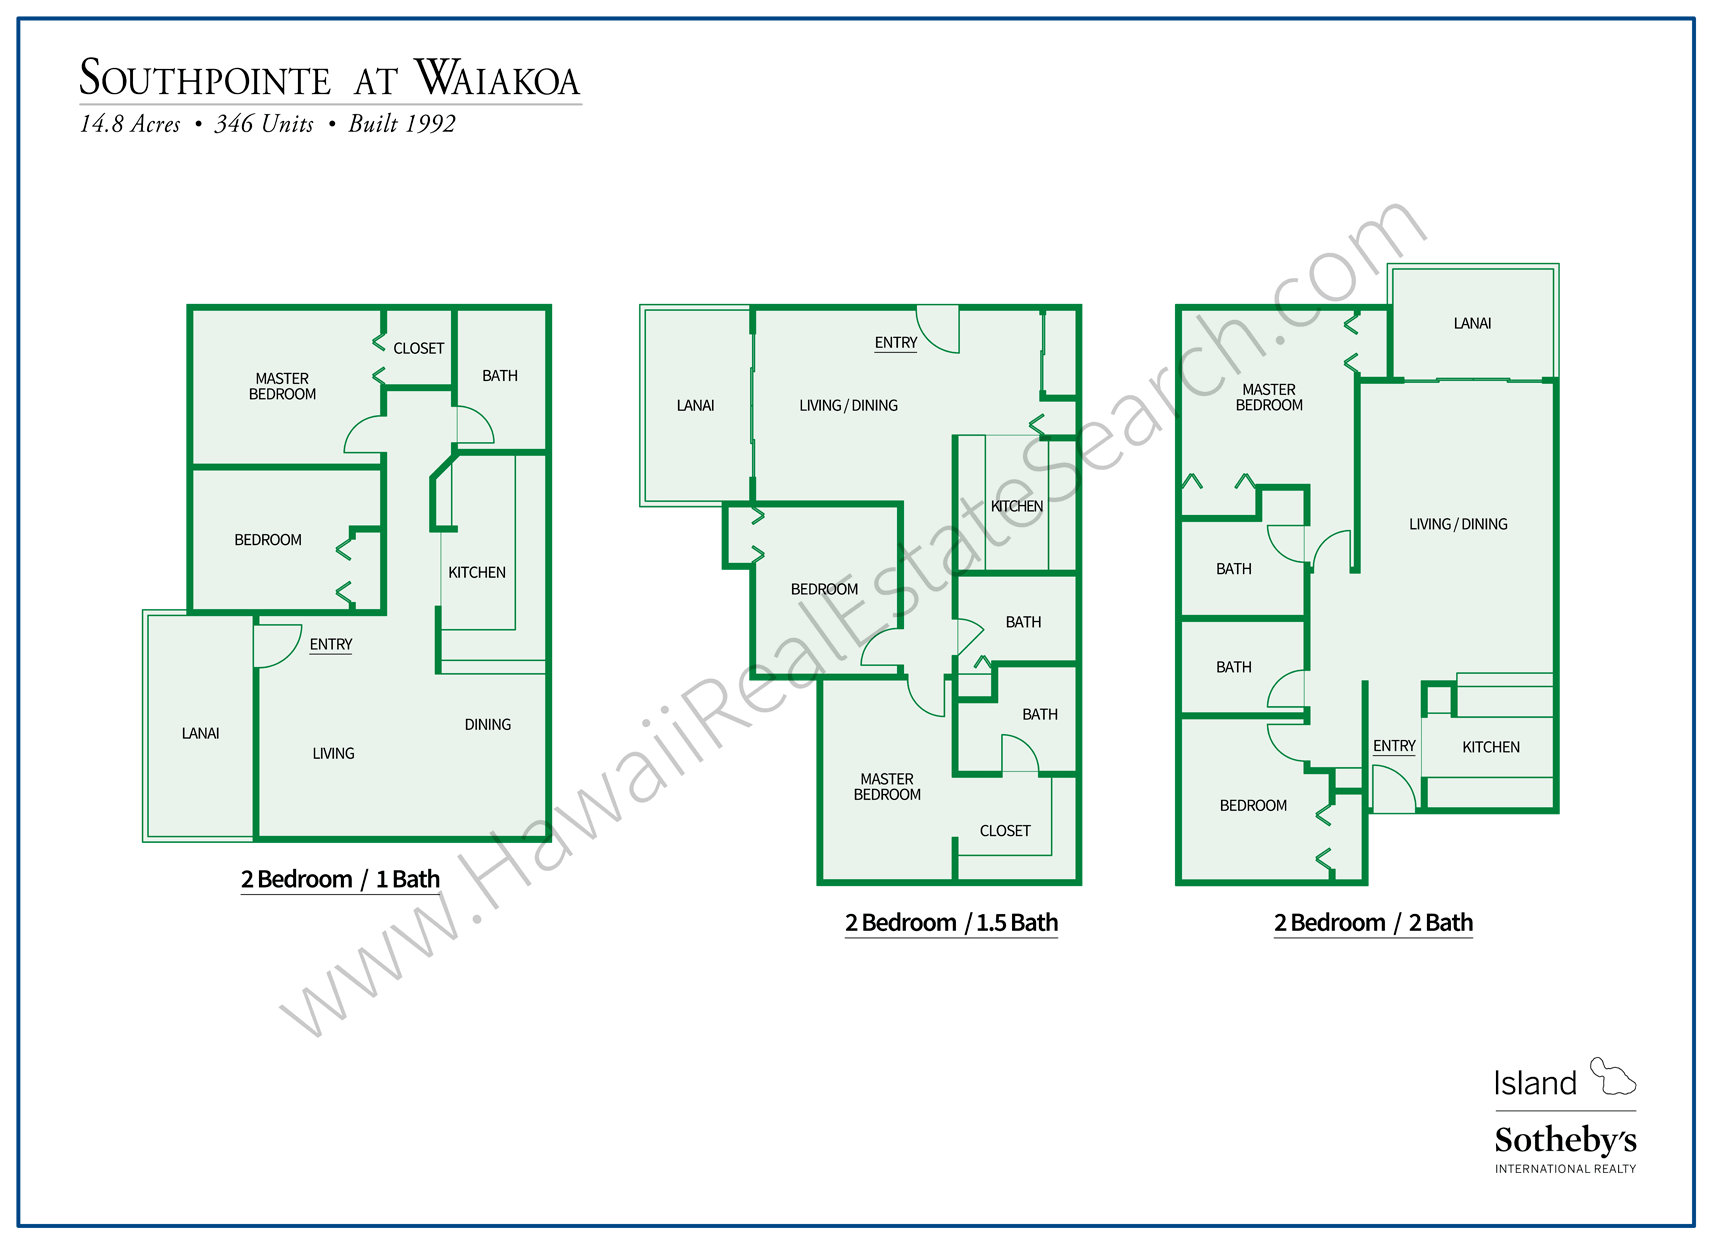 Southpointe Floor Plans Kihei